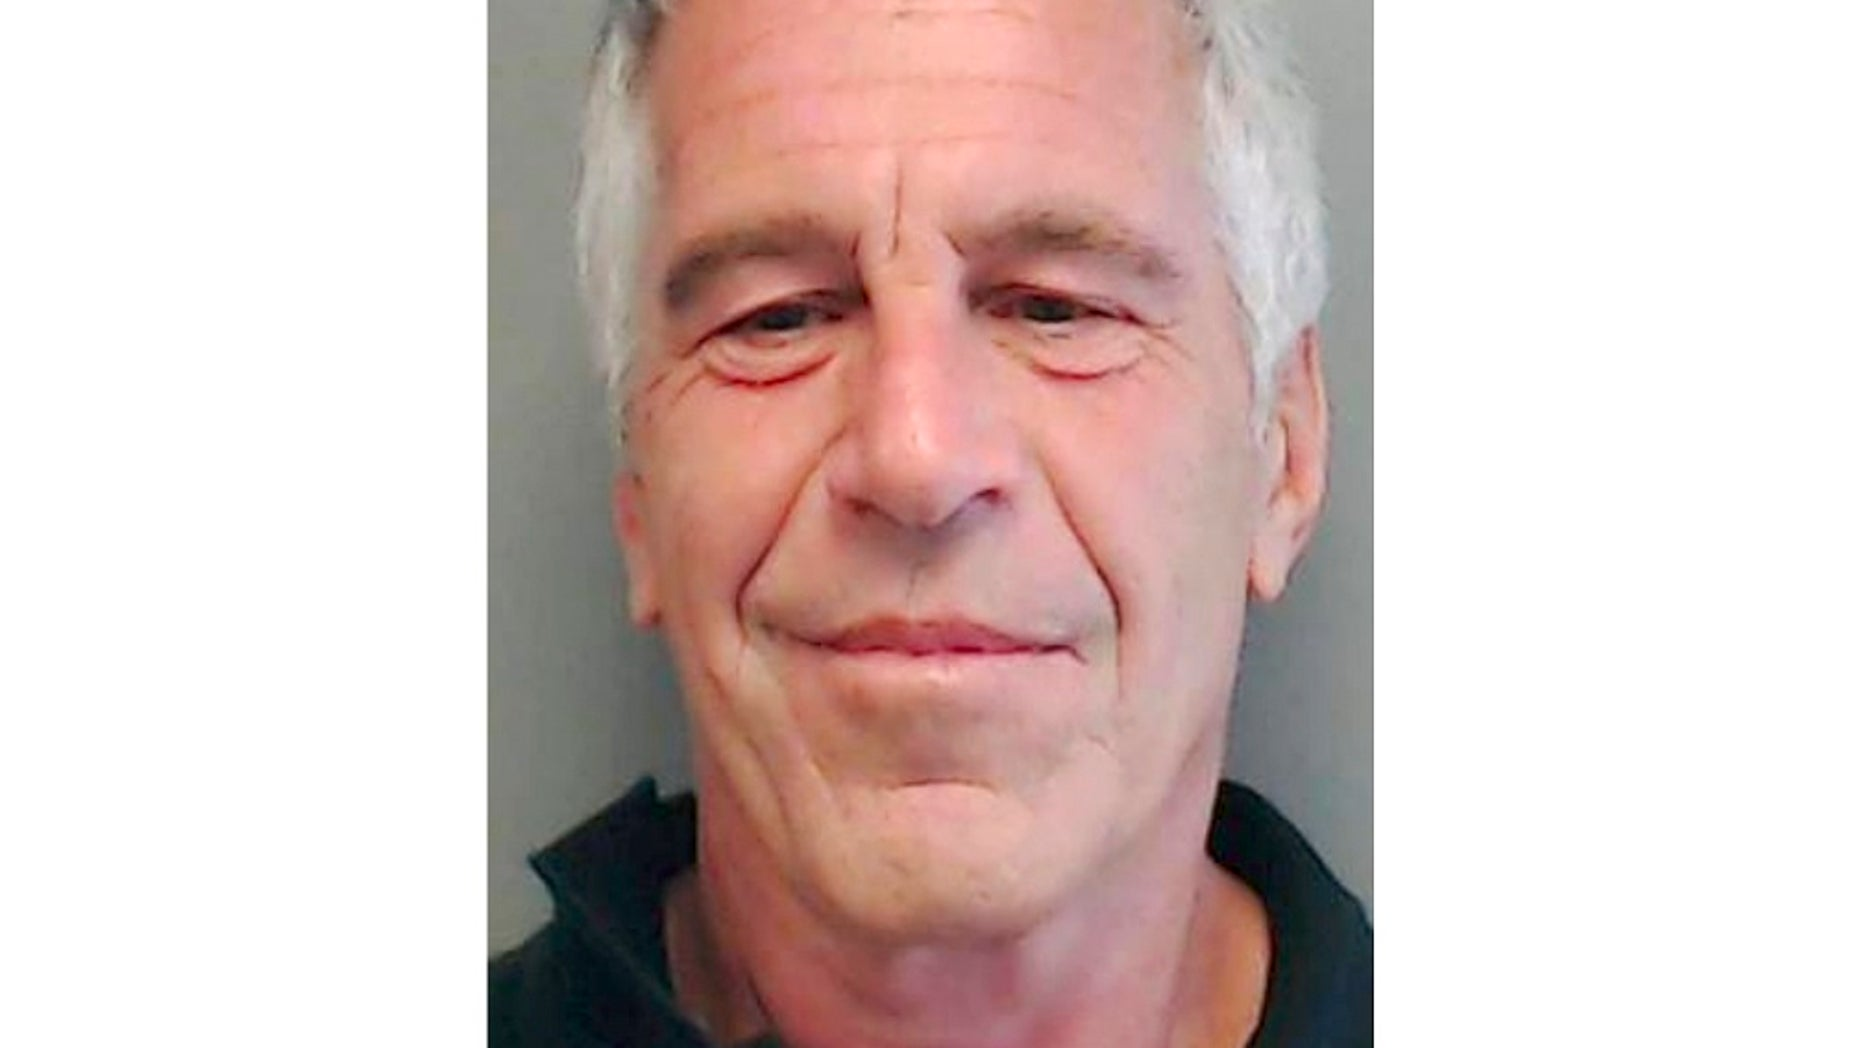 Westlake Legal Group AP19223094561165 Epstein death may not mean end of sex trafficking probe fox-news/columns/fox-news-first fox news fnc/us fnc article 1c514b6c-8ad8-5170-a8ce-e523738910f5